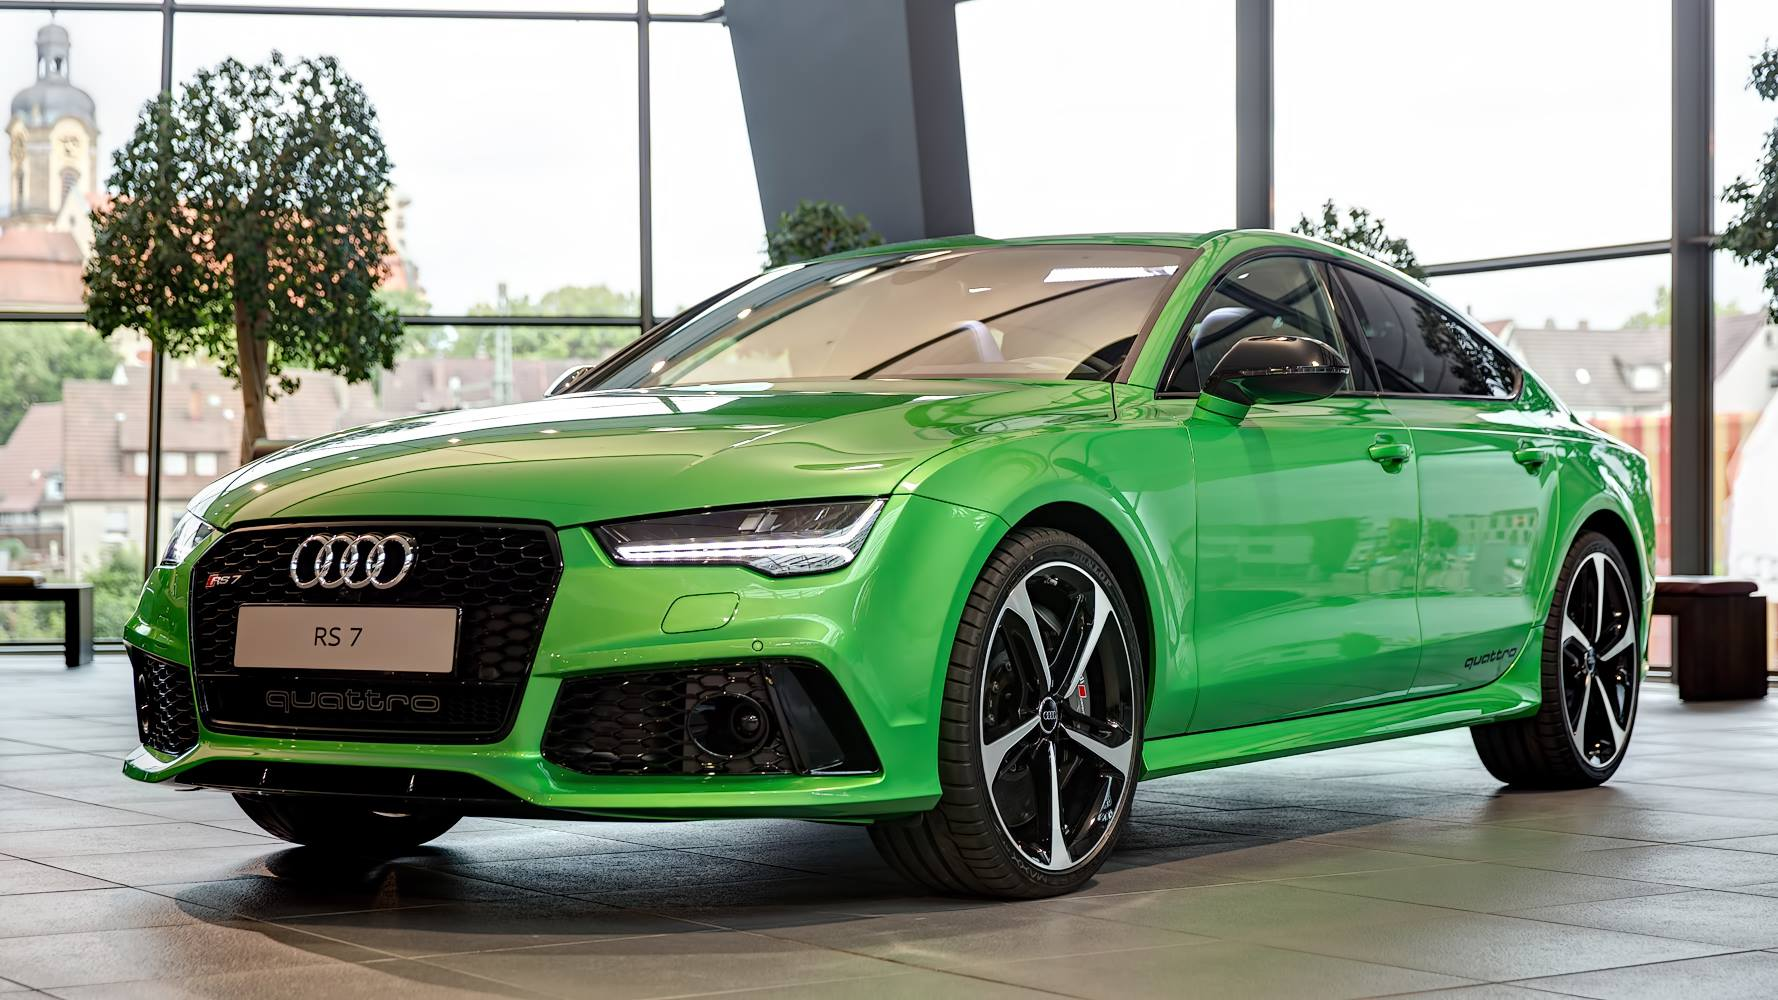 Unique Apple Green Metallic Audi RS7 Sportback in Germany ...